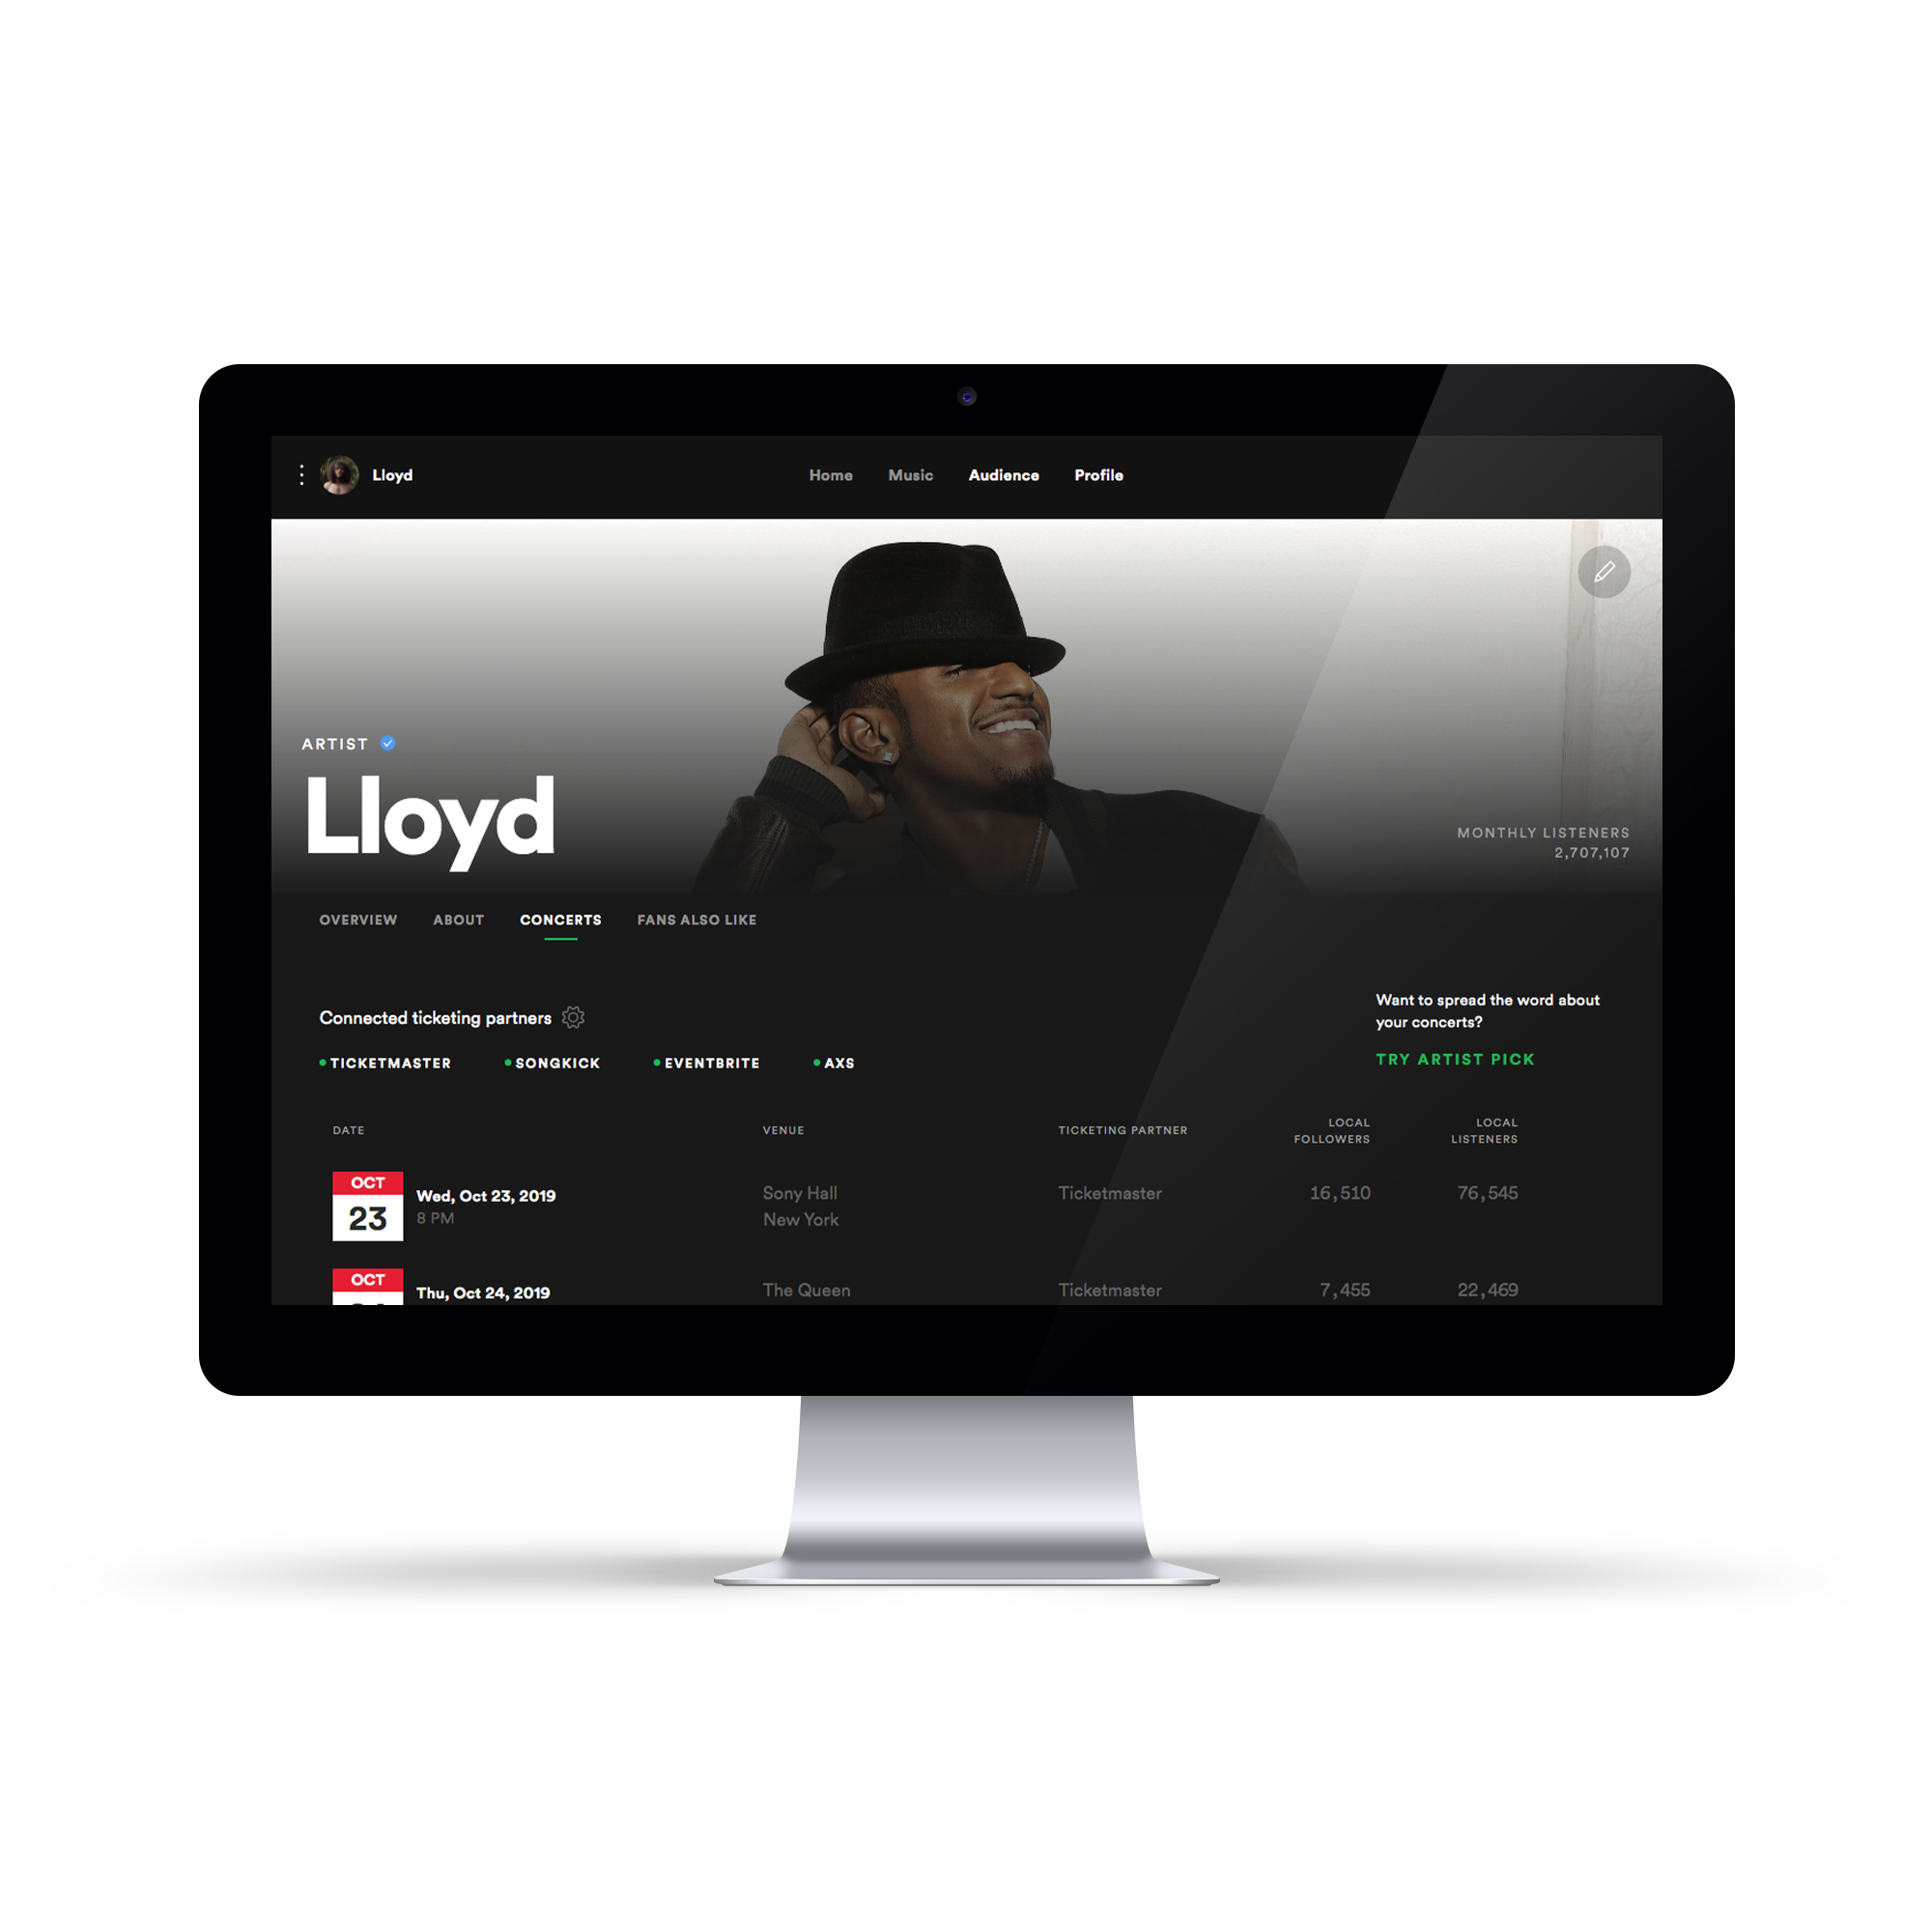 iMac for Website Mockups - Lloyd Spotify.png